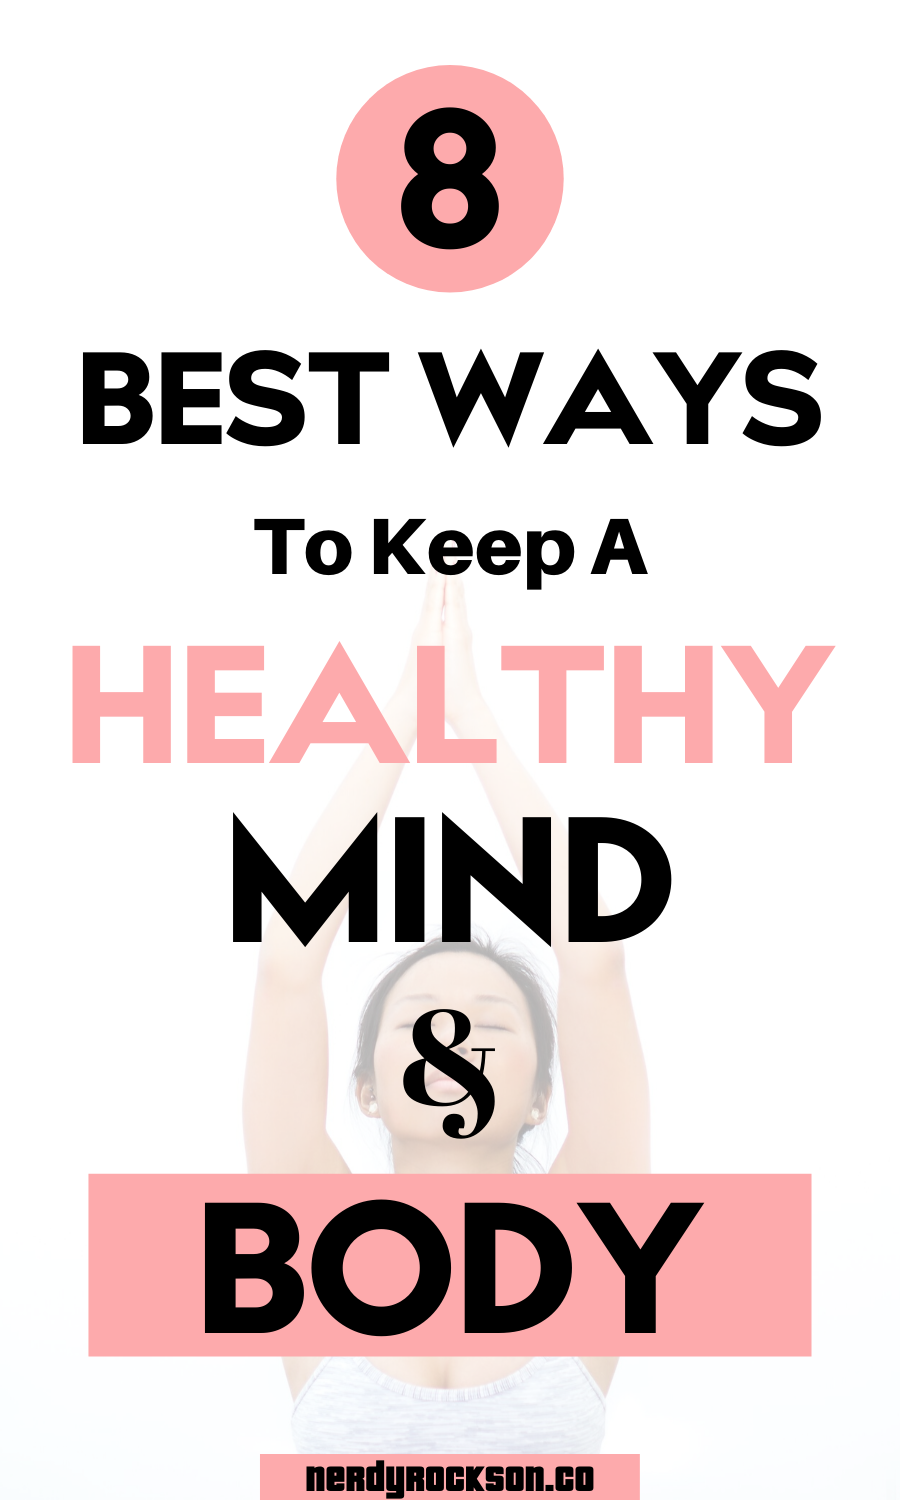 Healthy mind & body